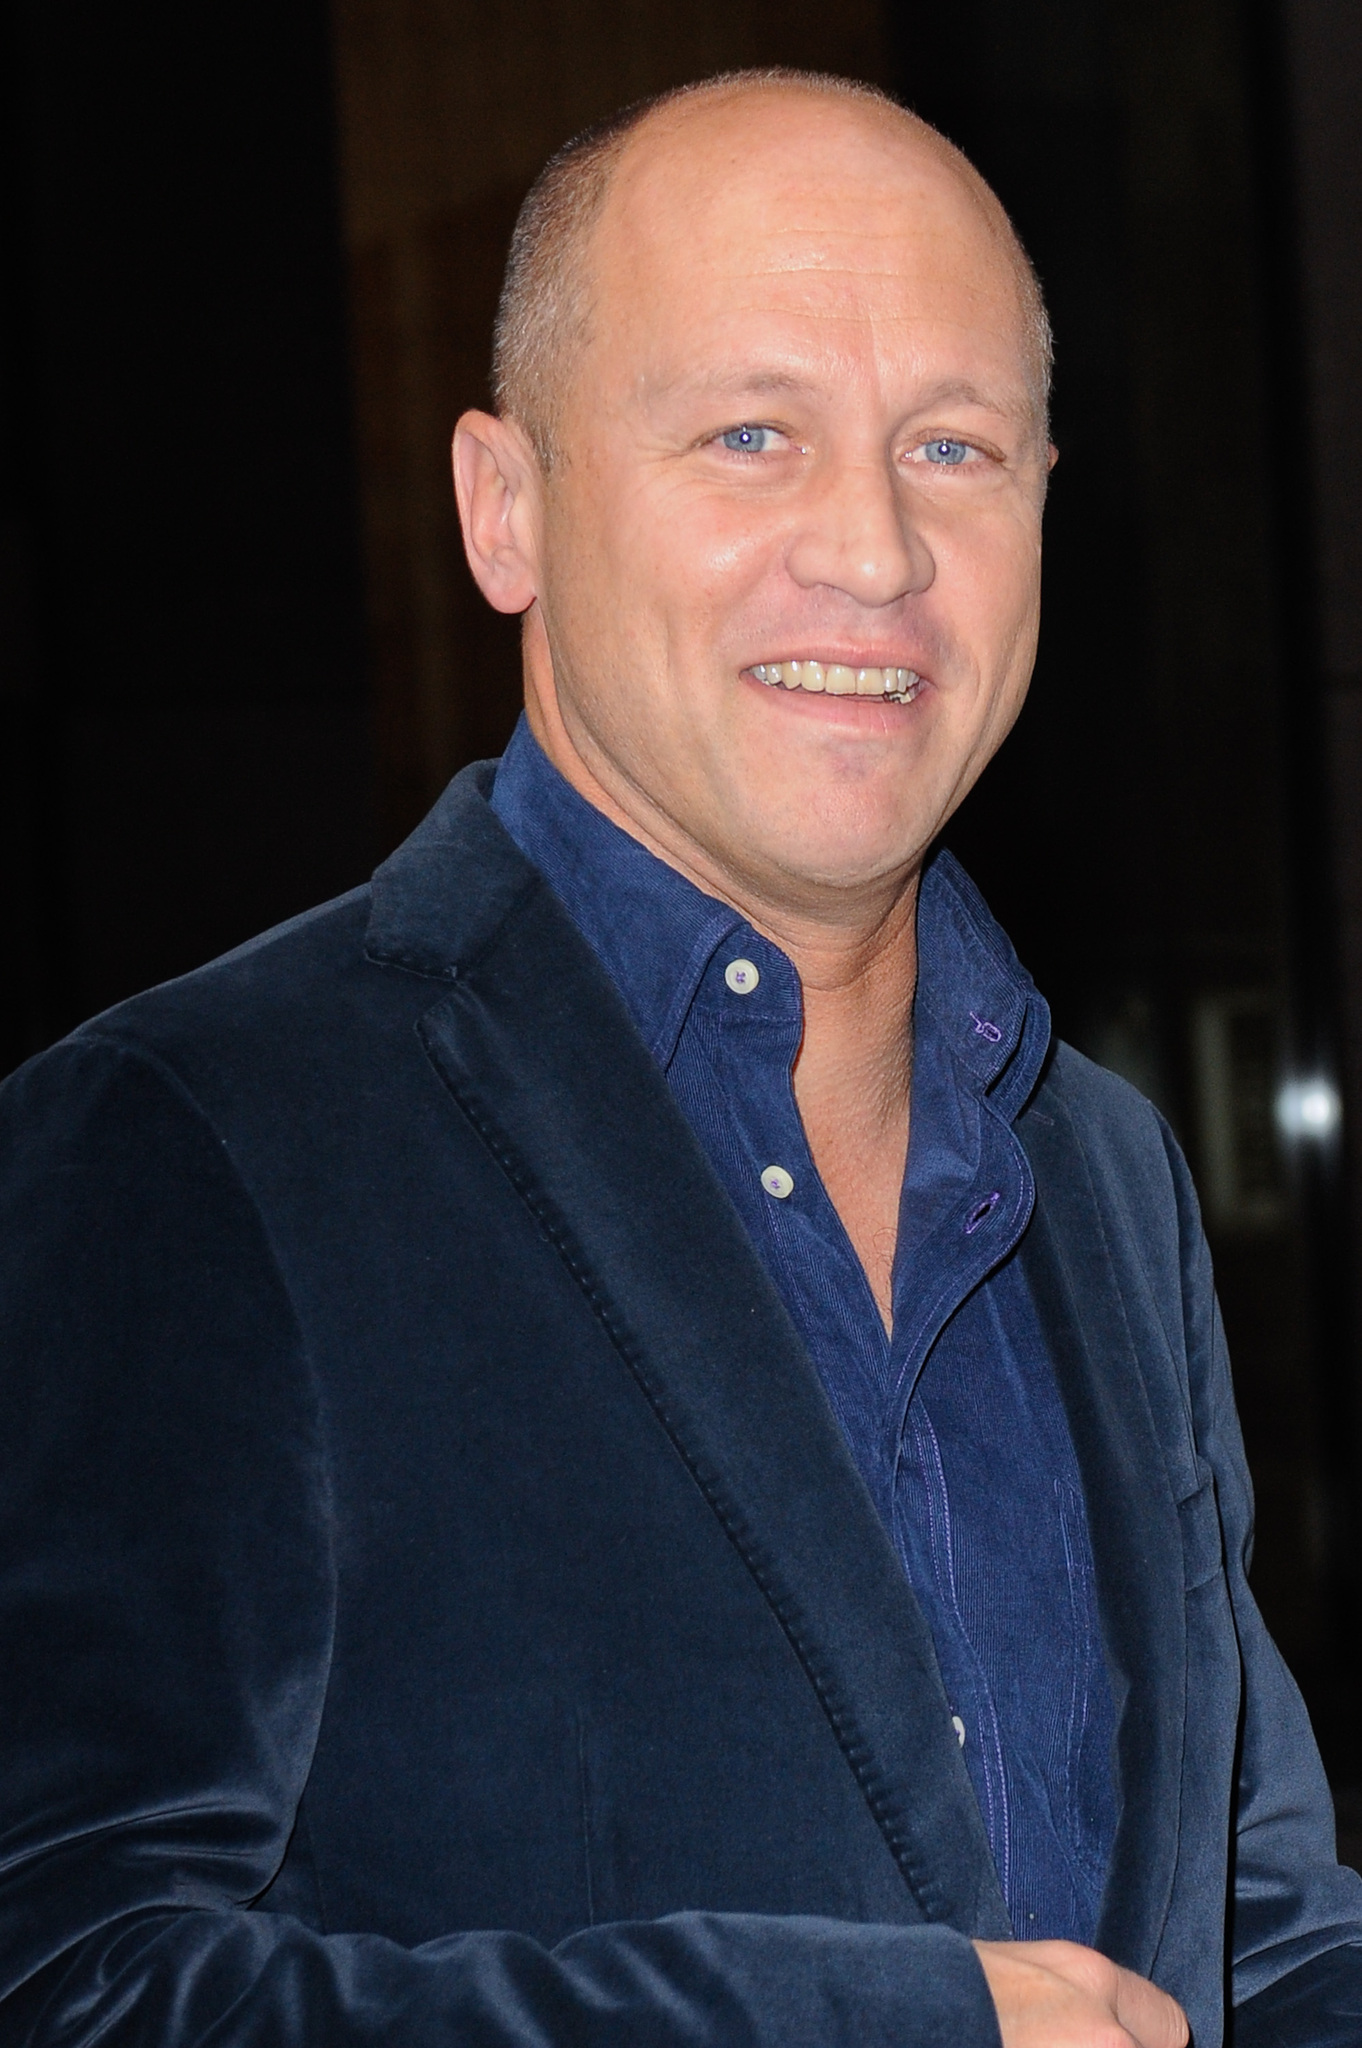 The 58-year old son of father (?) and mother(?) Mike Judge in 2021 photo. Mike Judge earned a  million dollar salary - leaving the net worth at  million in 2021